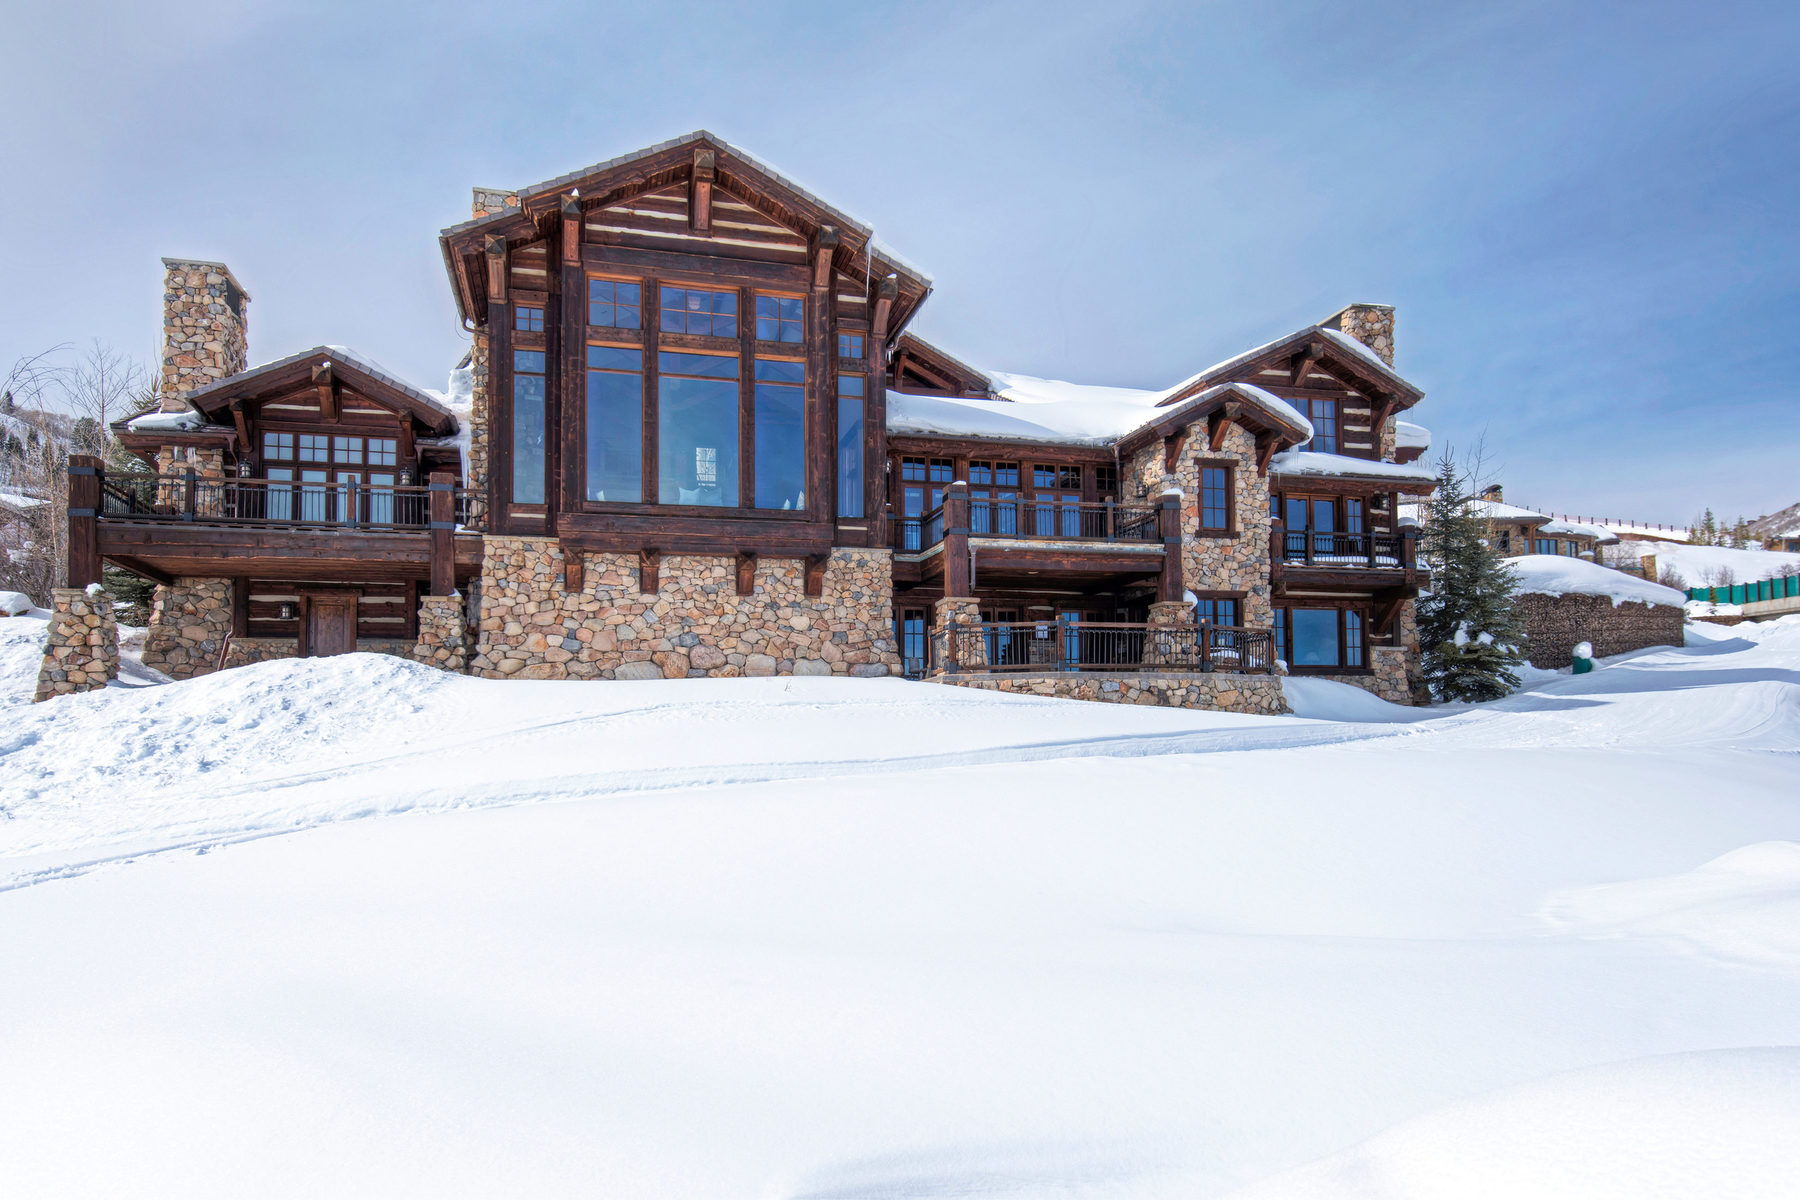 Single Family Home for Sale at Rustic Lodge-Style Home with Grand Views and Direct Ski-in, Ski-out Access 2727 W Deer Hollow Ct Park City, Utah, 84060 United States